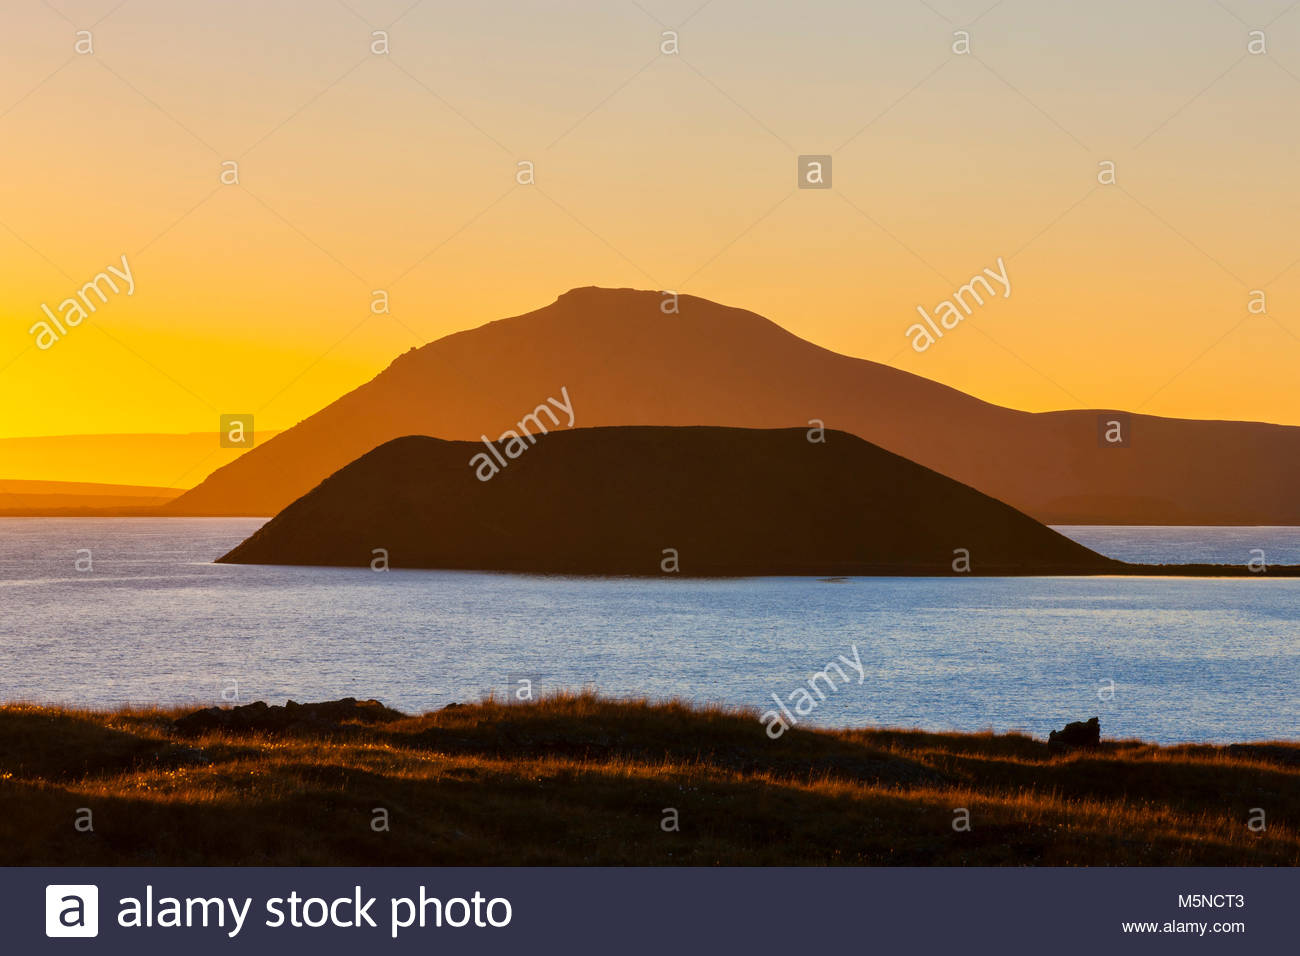 A pseudocrater is rendered in silhouette against a volanic cone at sunset in Mývatn in northern Iceland. Mývatn - Stock Image